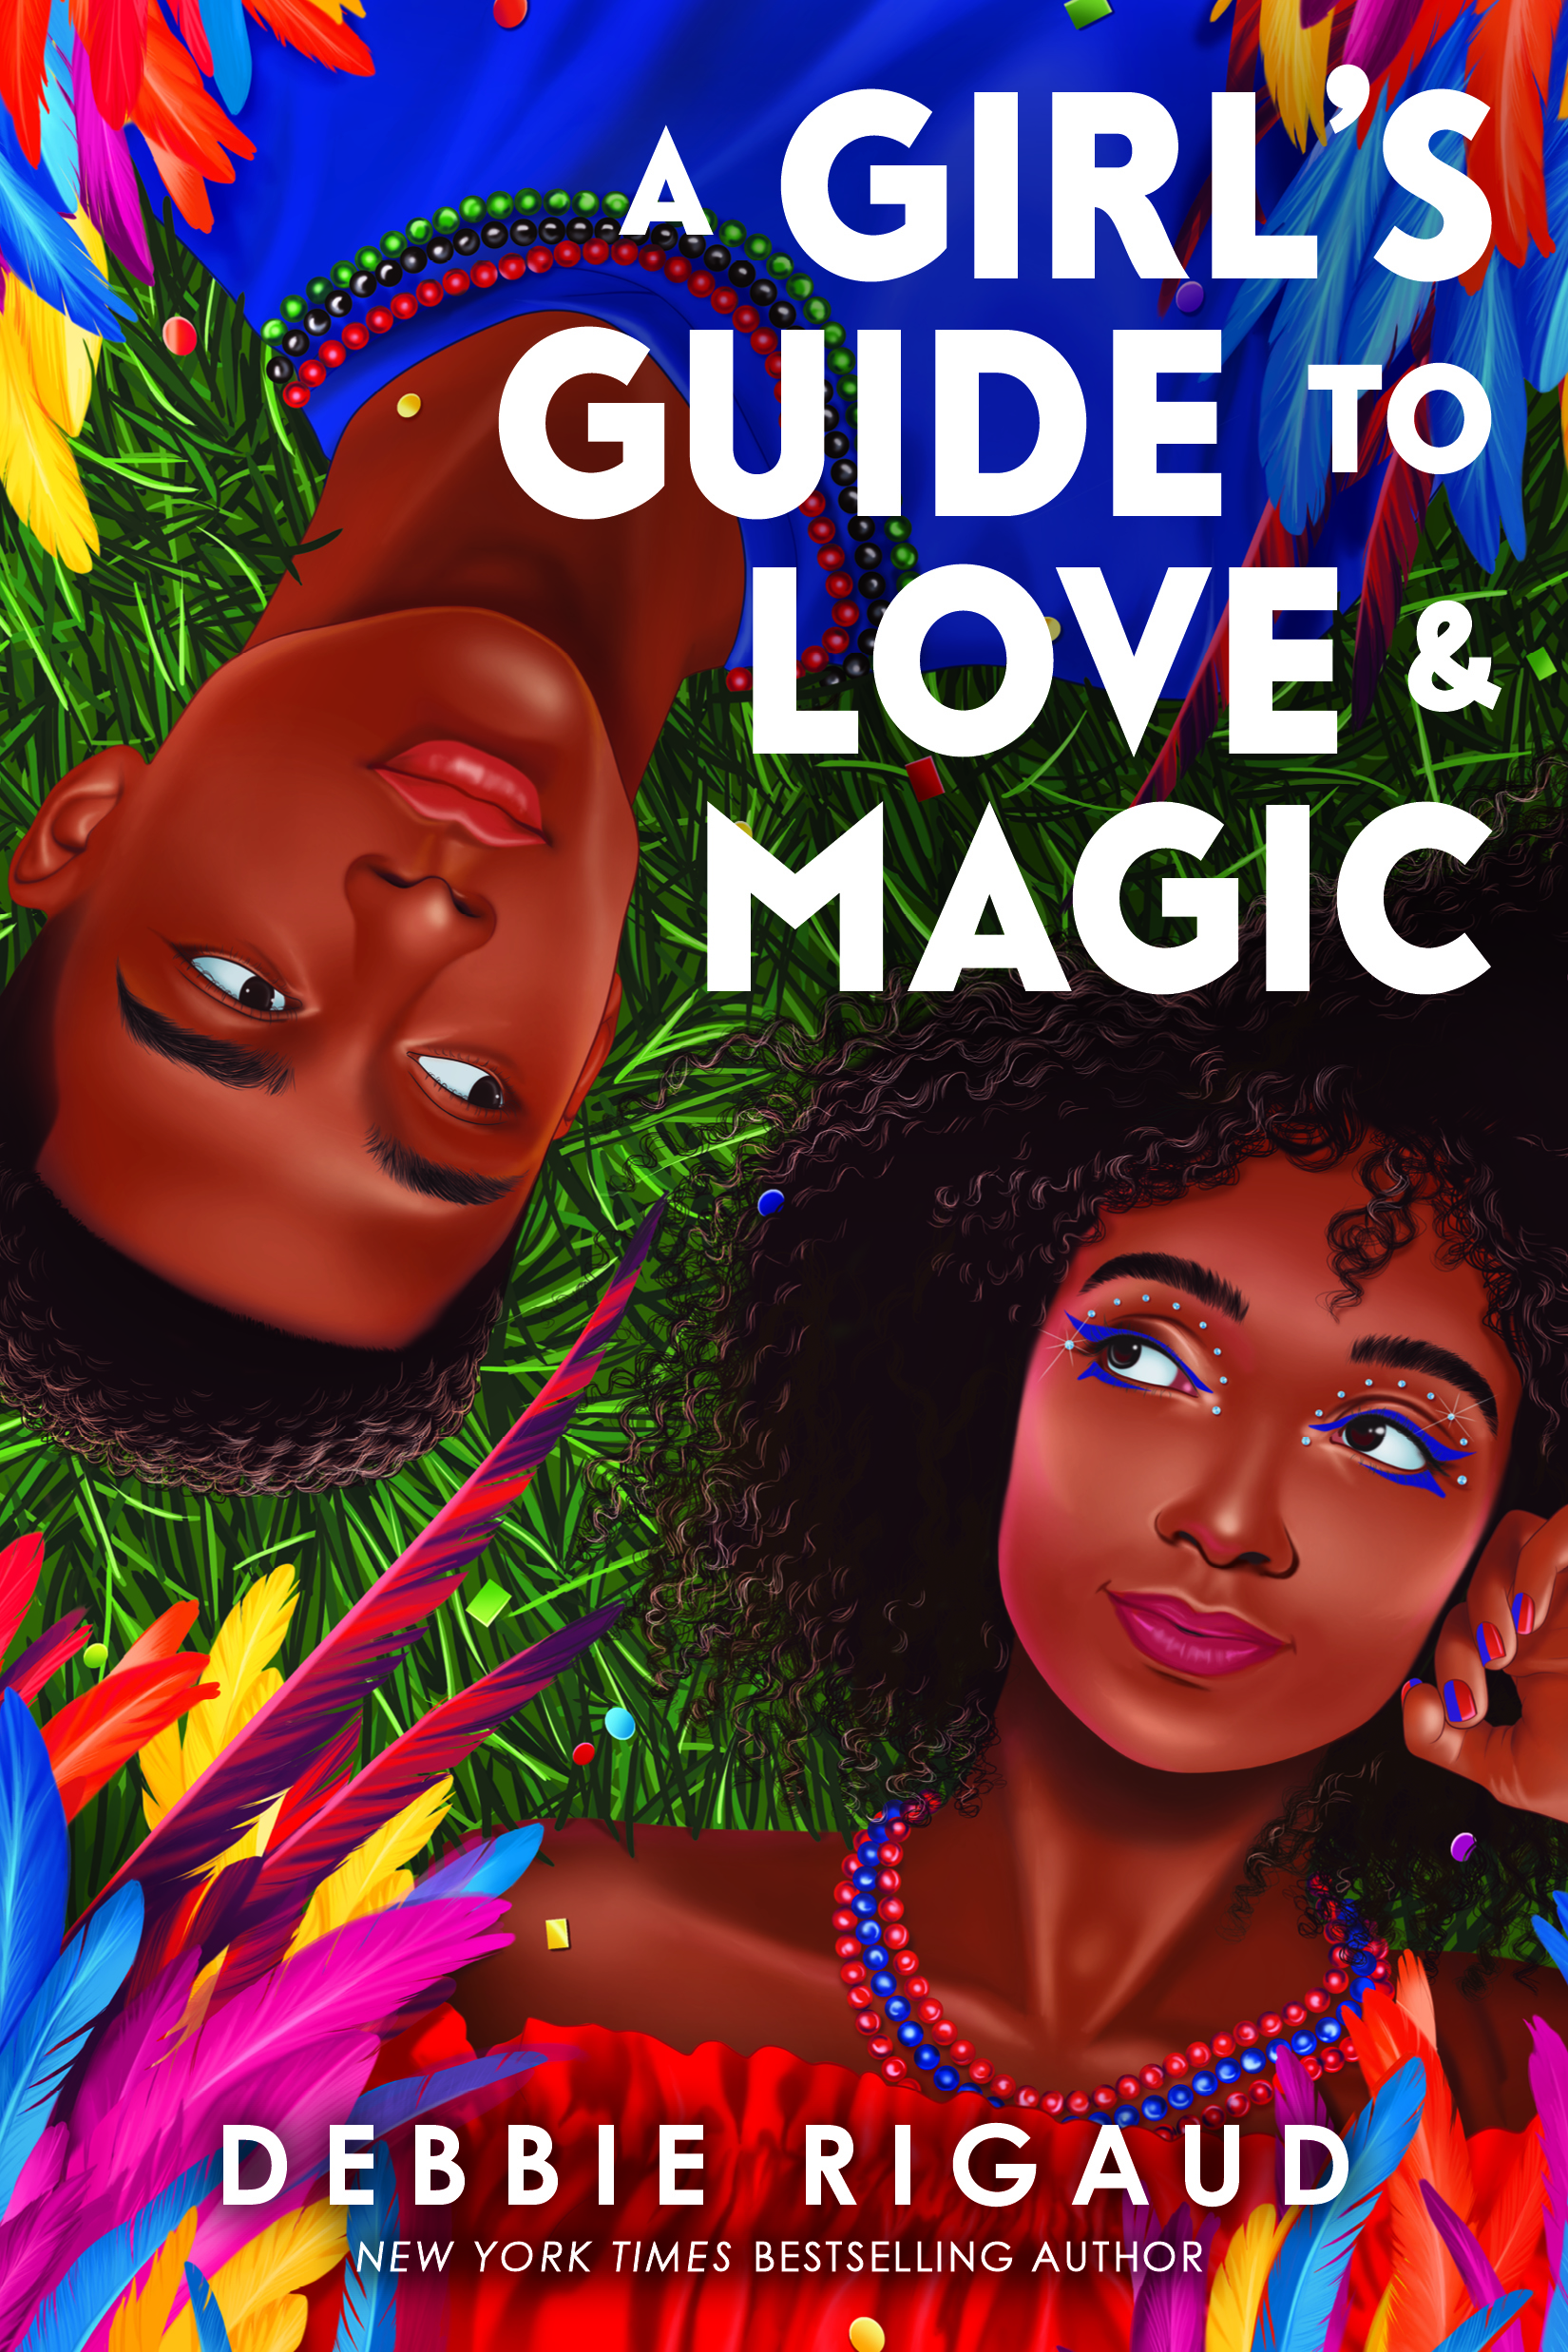 Cover art for A Girl's Guide to Love & Magic